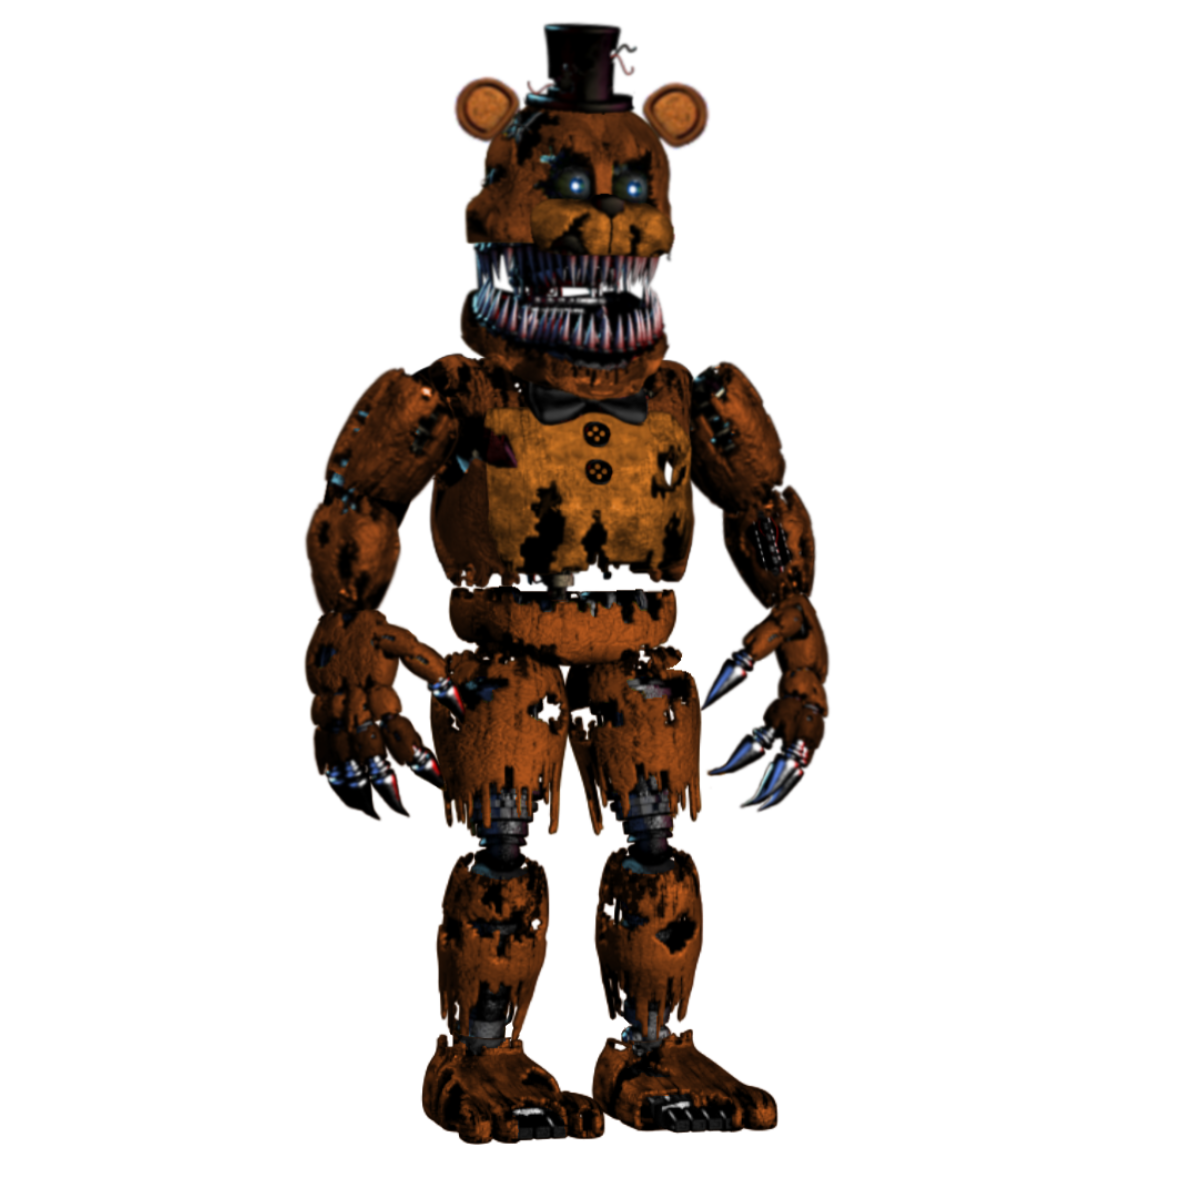 Fnaf 4 freddy png. Image nightmare withered five